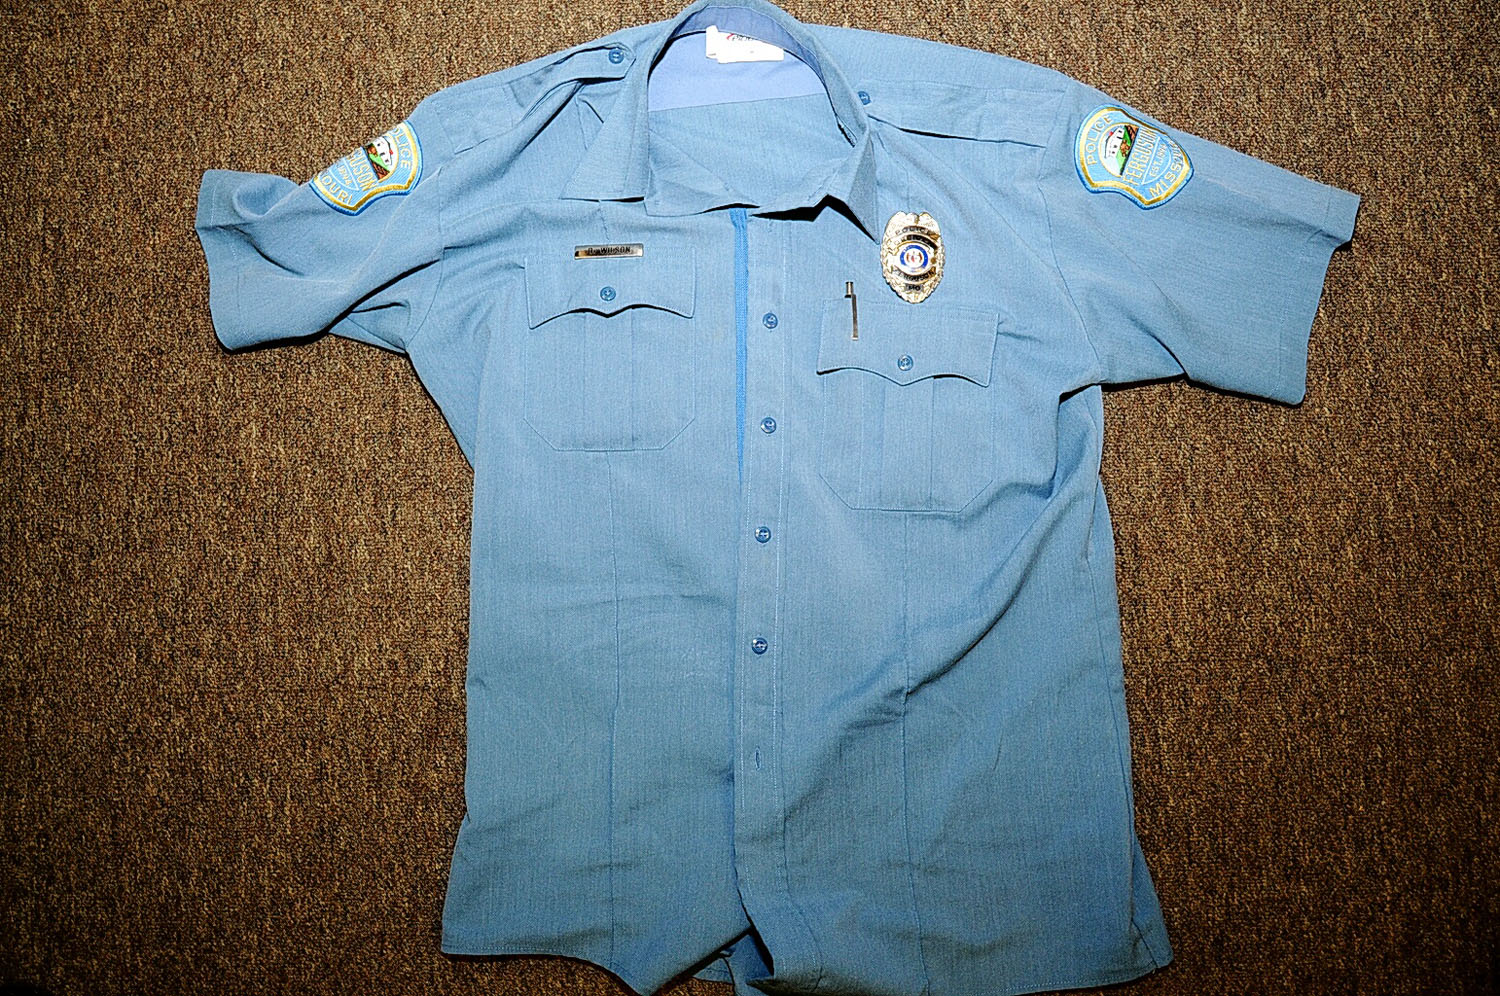 The uniform Officer Wilson wore the day he shot and killed Michael Brown